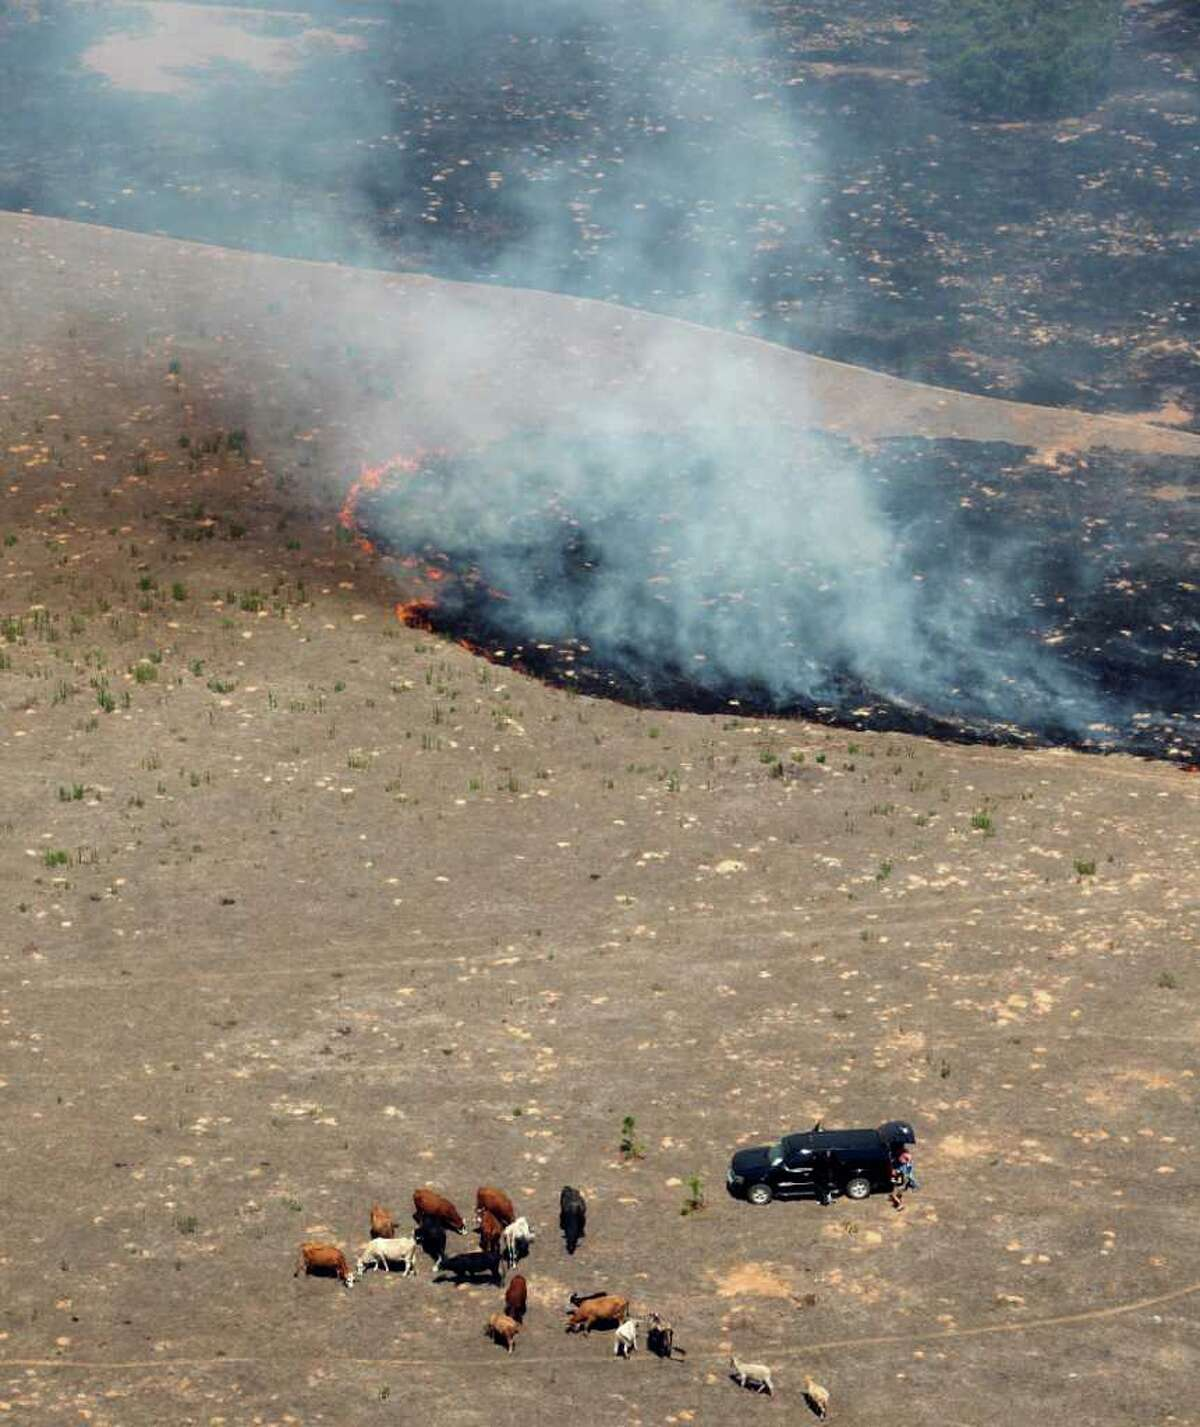 A group of people attend Tuesday Sept. 6, 2011 in this aerial image over the wildfires in the Bastrop, Texas to cattle as a portion of the fire burns in the background. (William Luther/wluther@express-news.net)